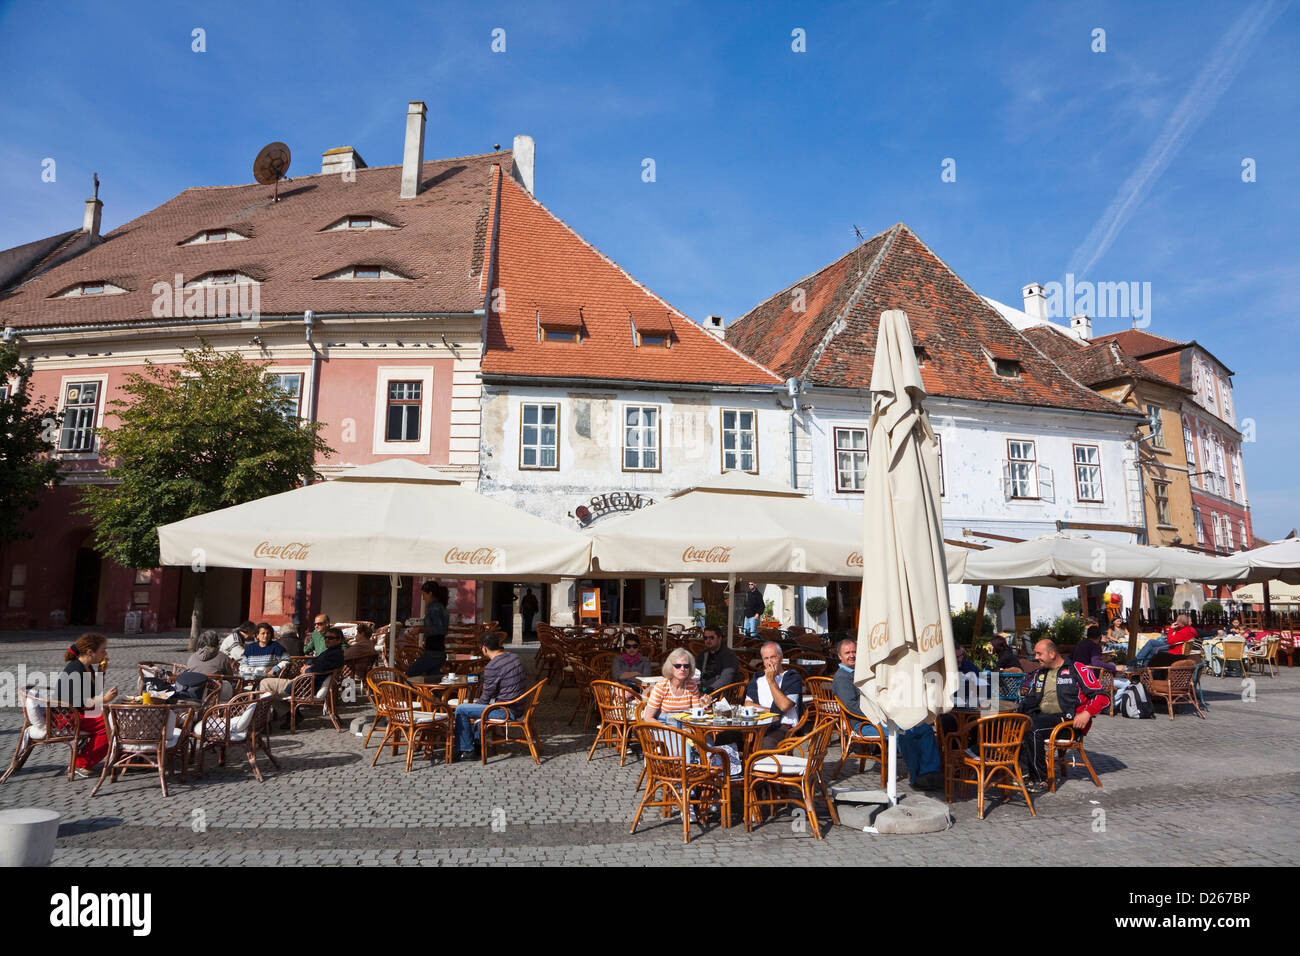 Sibiu, Hermannstadt in Transylvania, buildings on Piata Mica, locals enjoy Sunday morning having a coffee Stock Photo